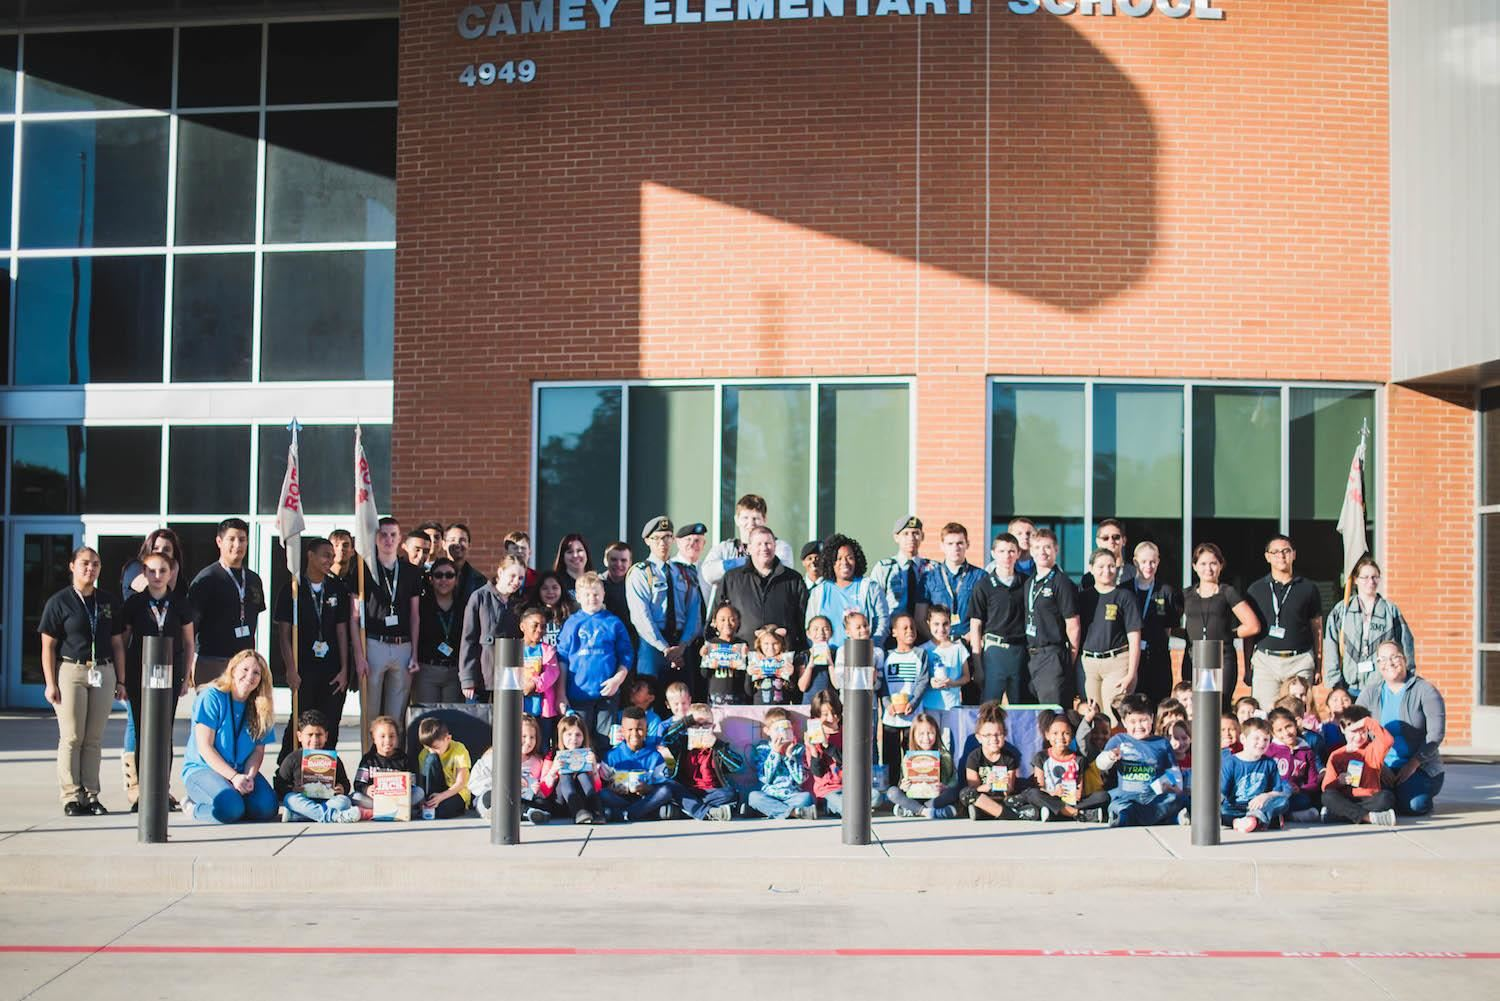 TCHS and Camey elementary students